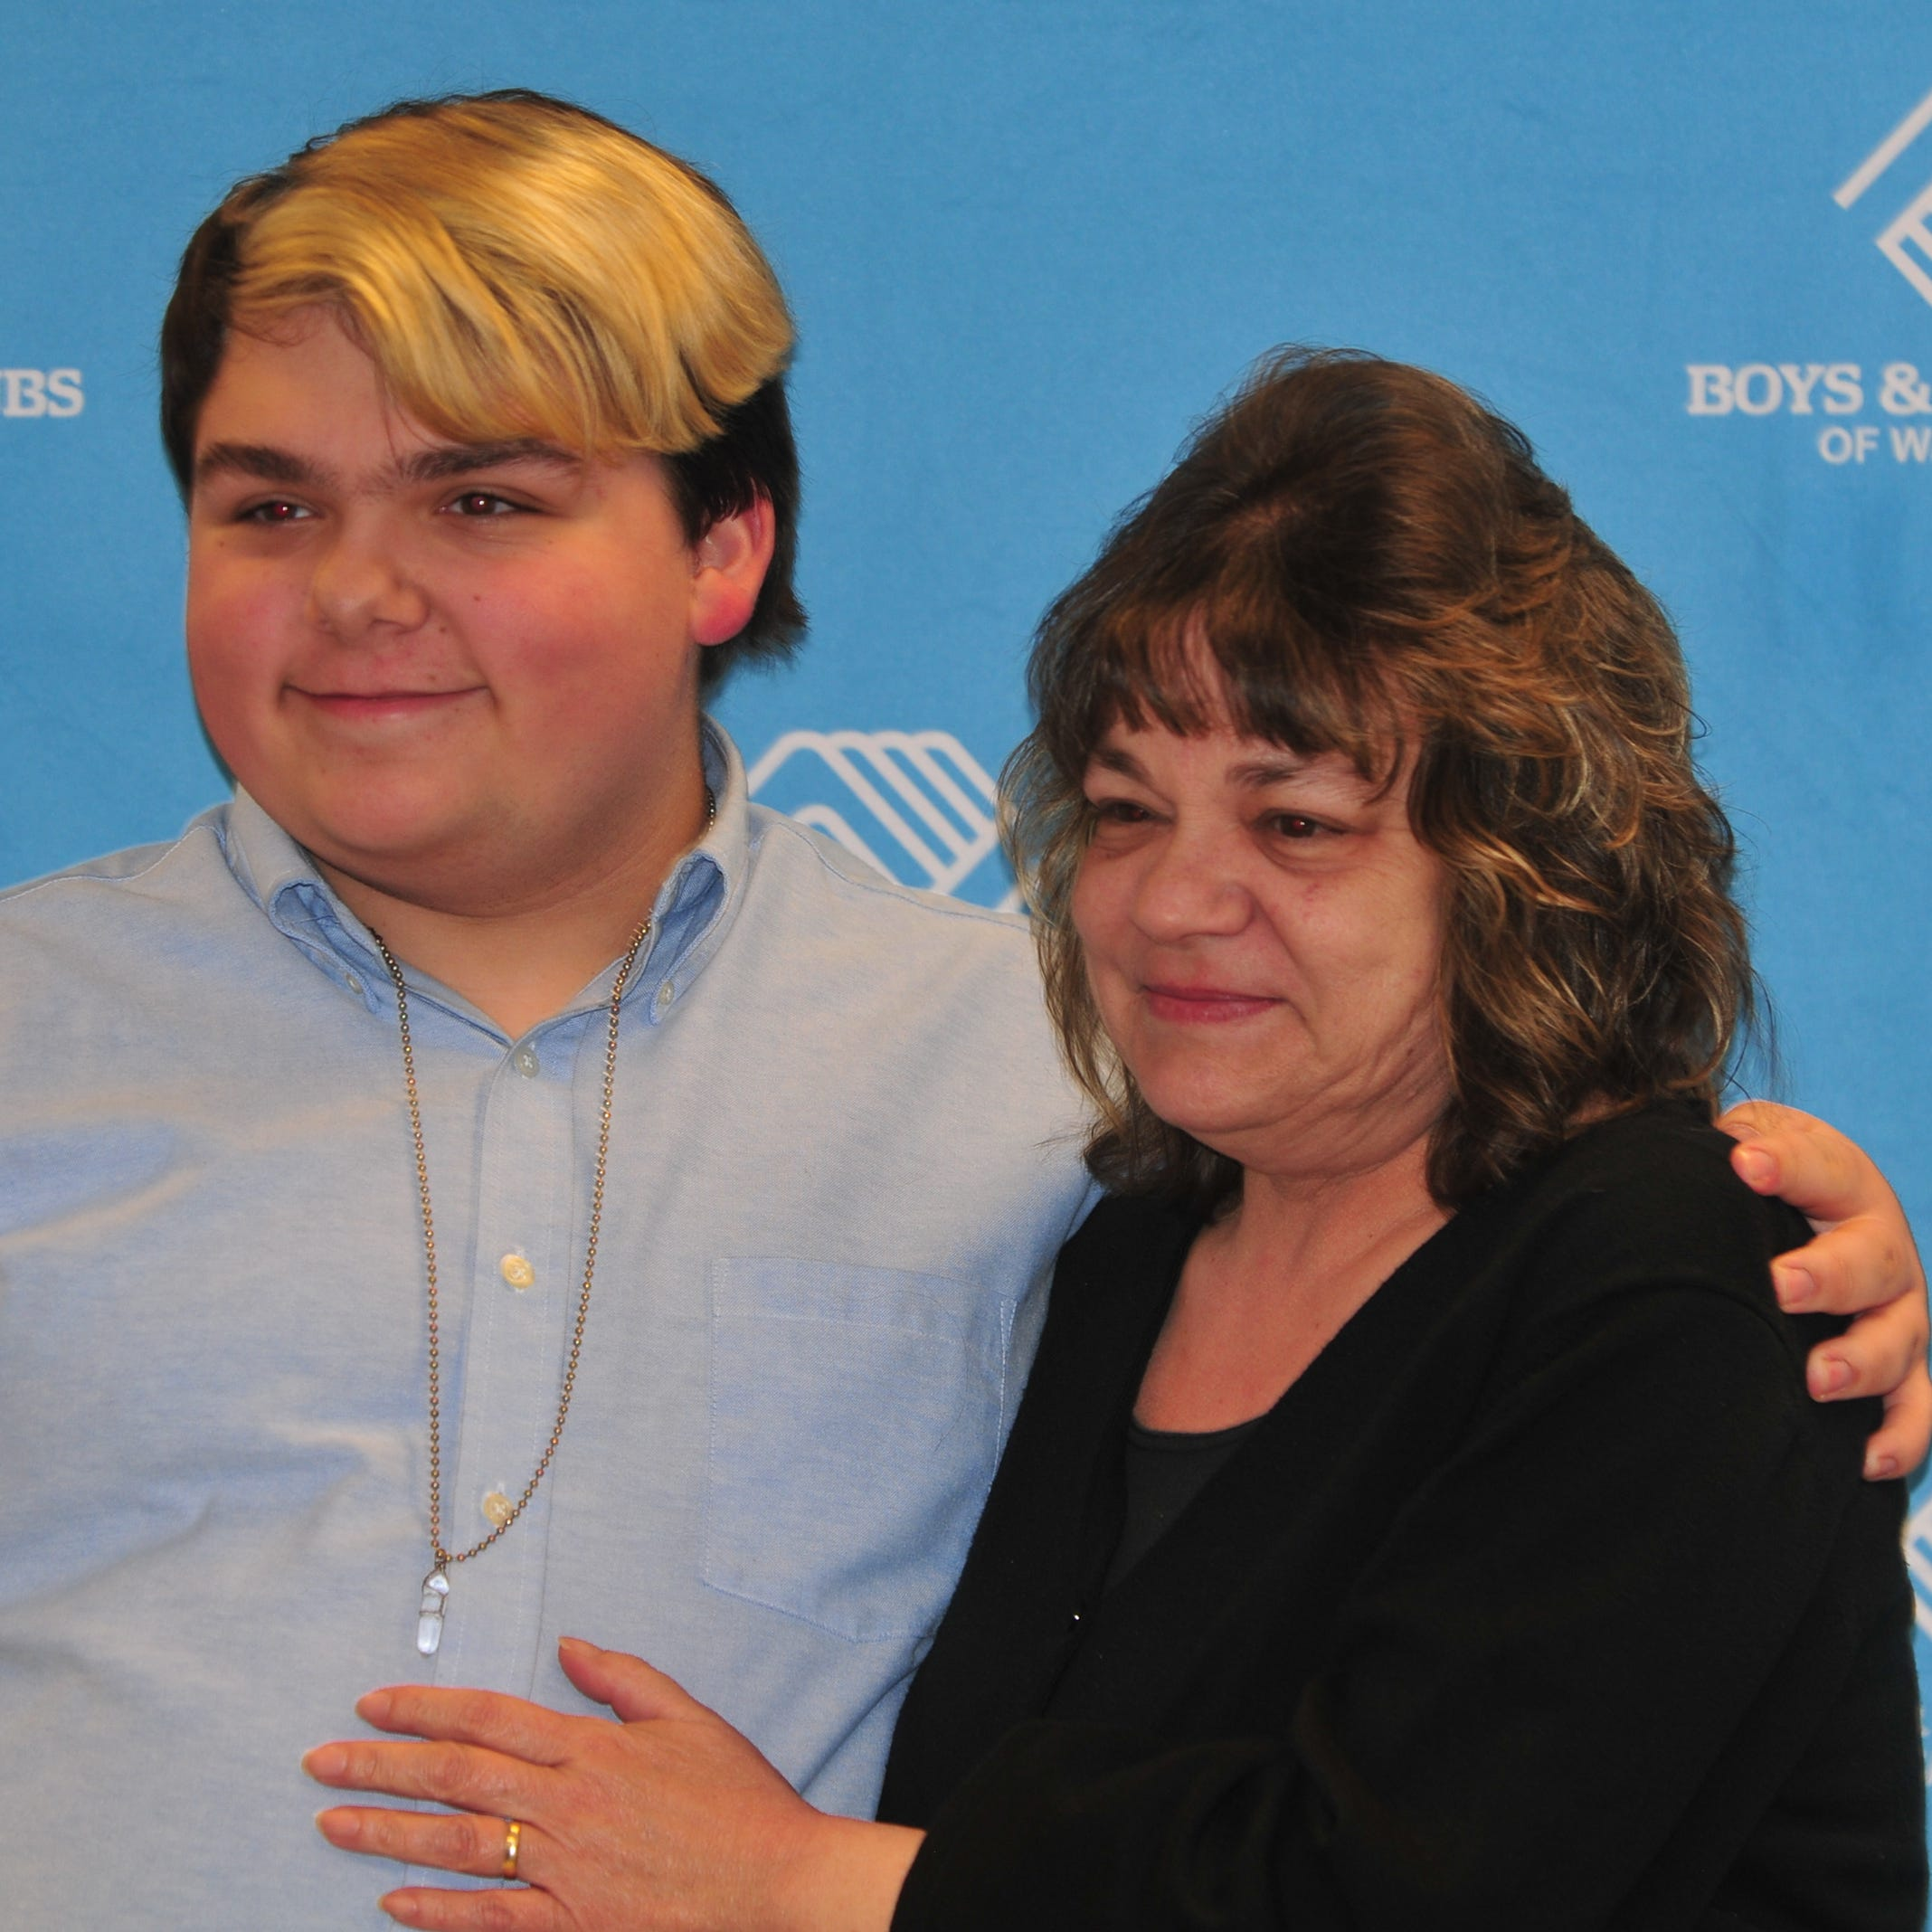 Smiles abound for Boys and Girls Club's Youth of the Year selection